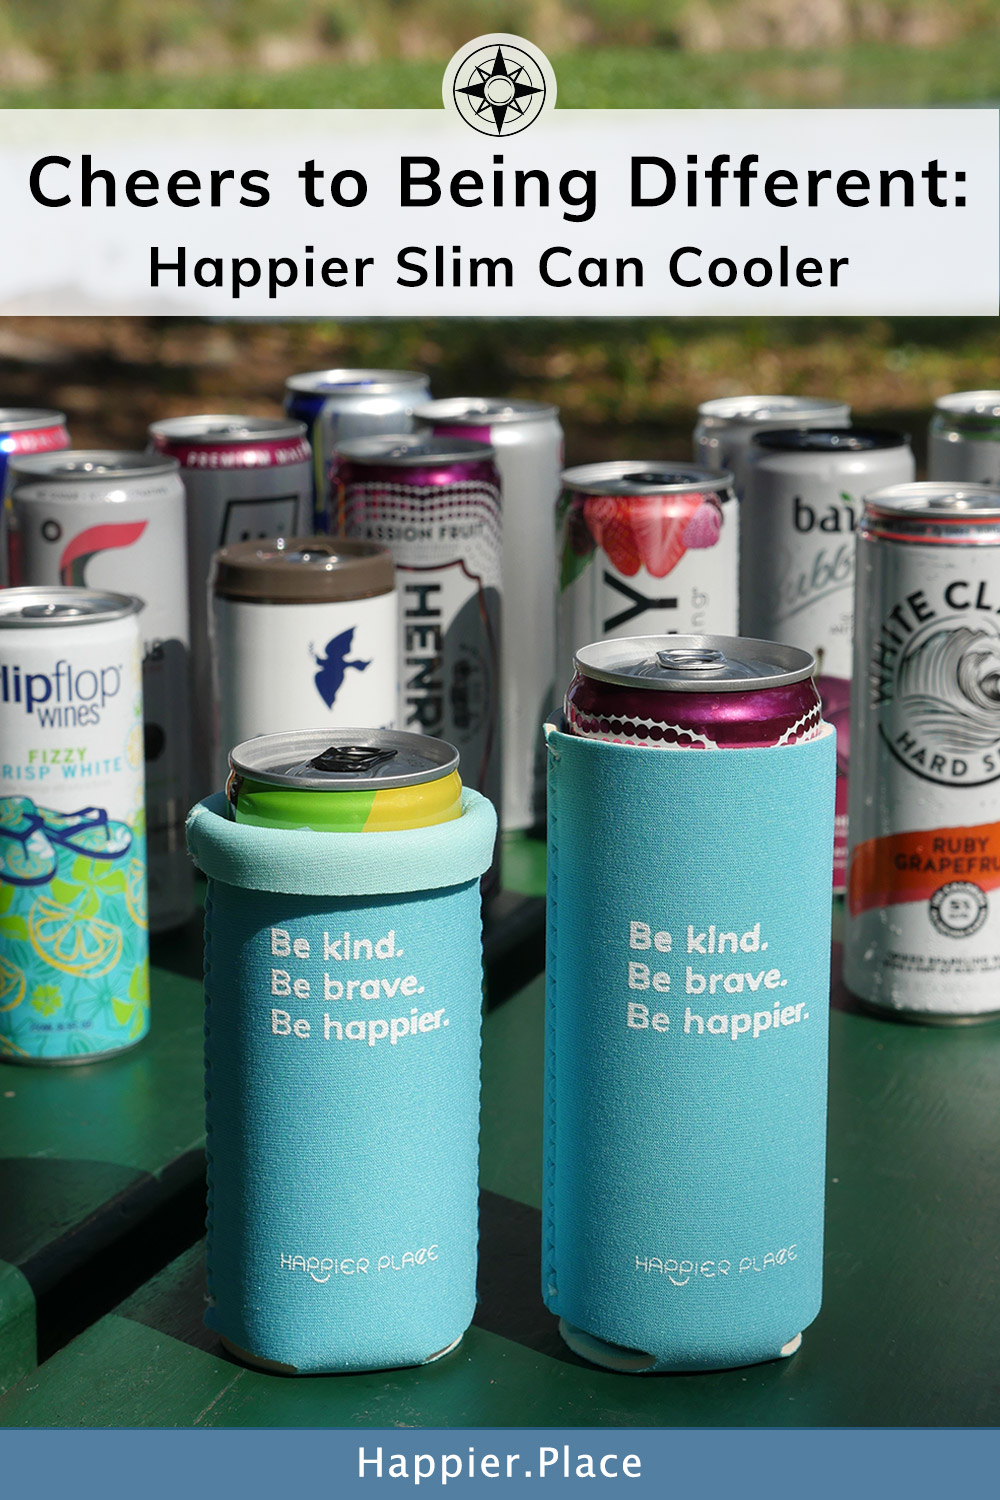 Cheers to being different: the Happier Slim Can Cooler for cool drinks and for making the world a happier place with its inspirational quote.  #HappierPlace #inspiration #slimcan #cozy #cancooler  #bekind #bebrave